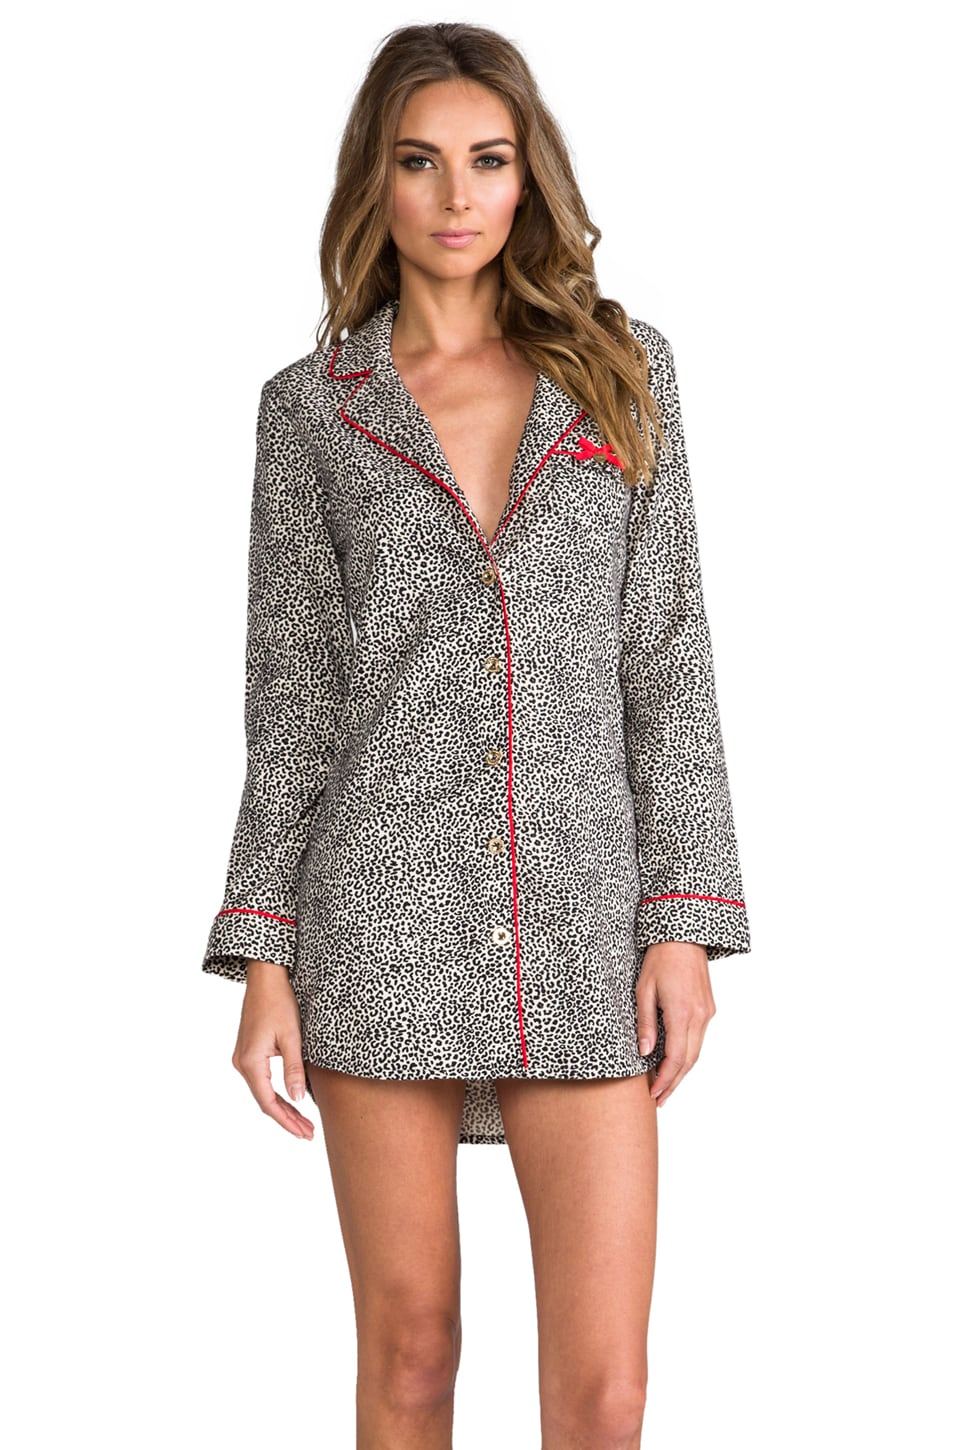 Juicy Couture Flannel Nightshirt in Black Mini Cheetah